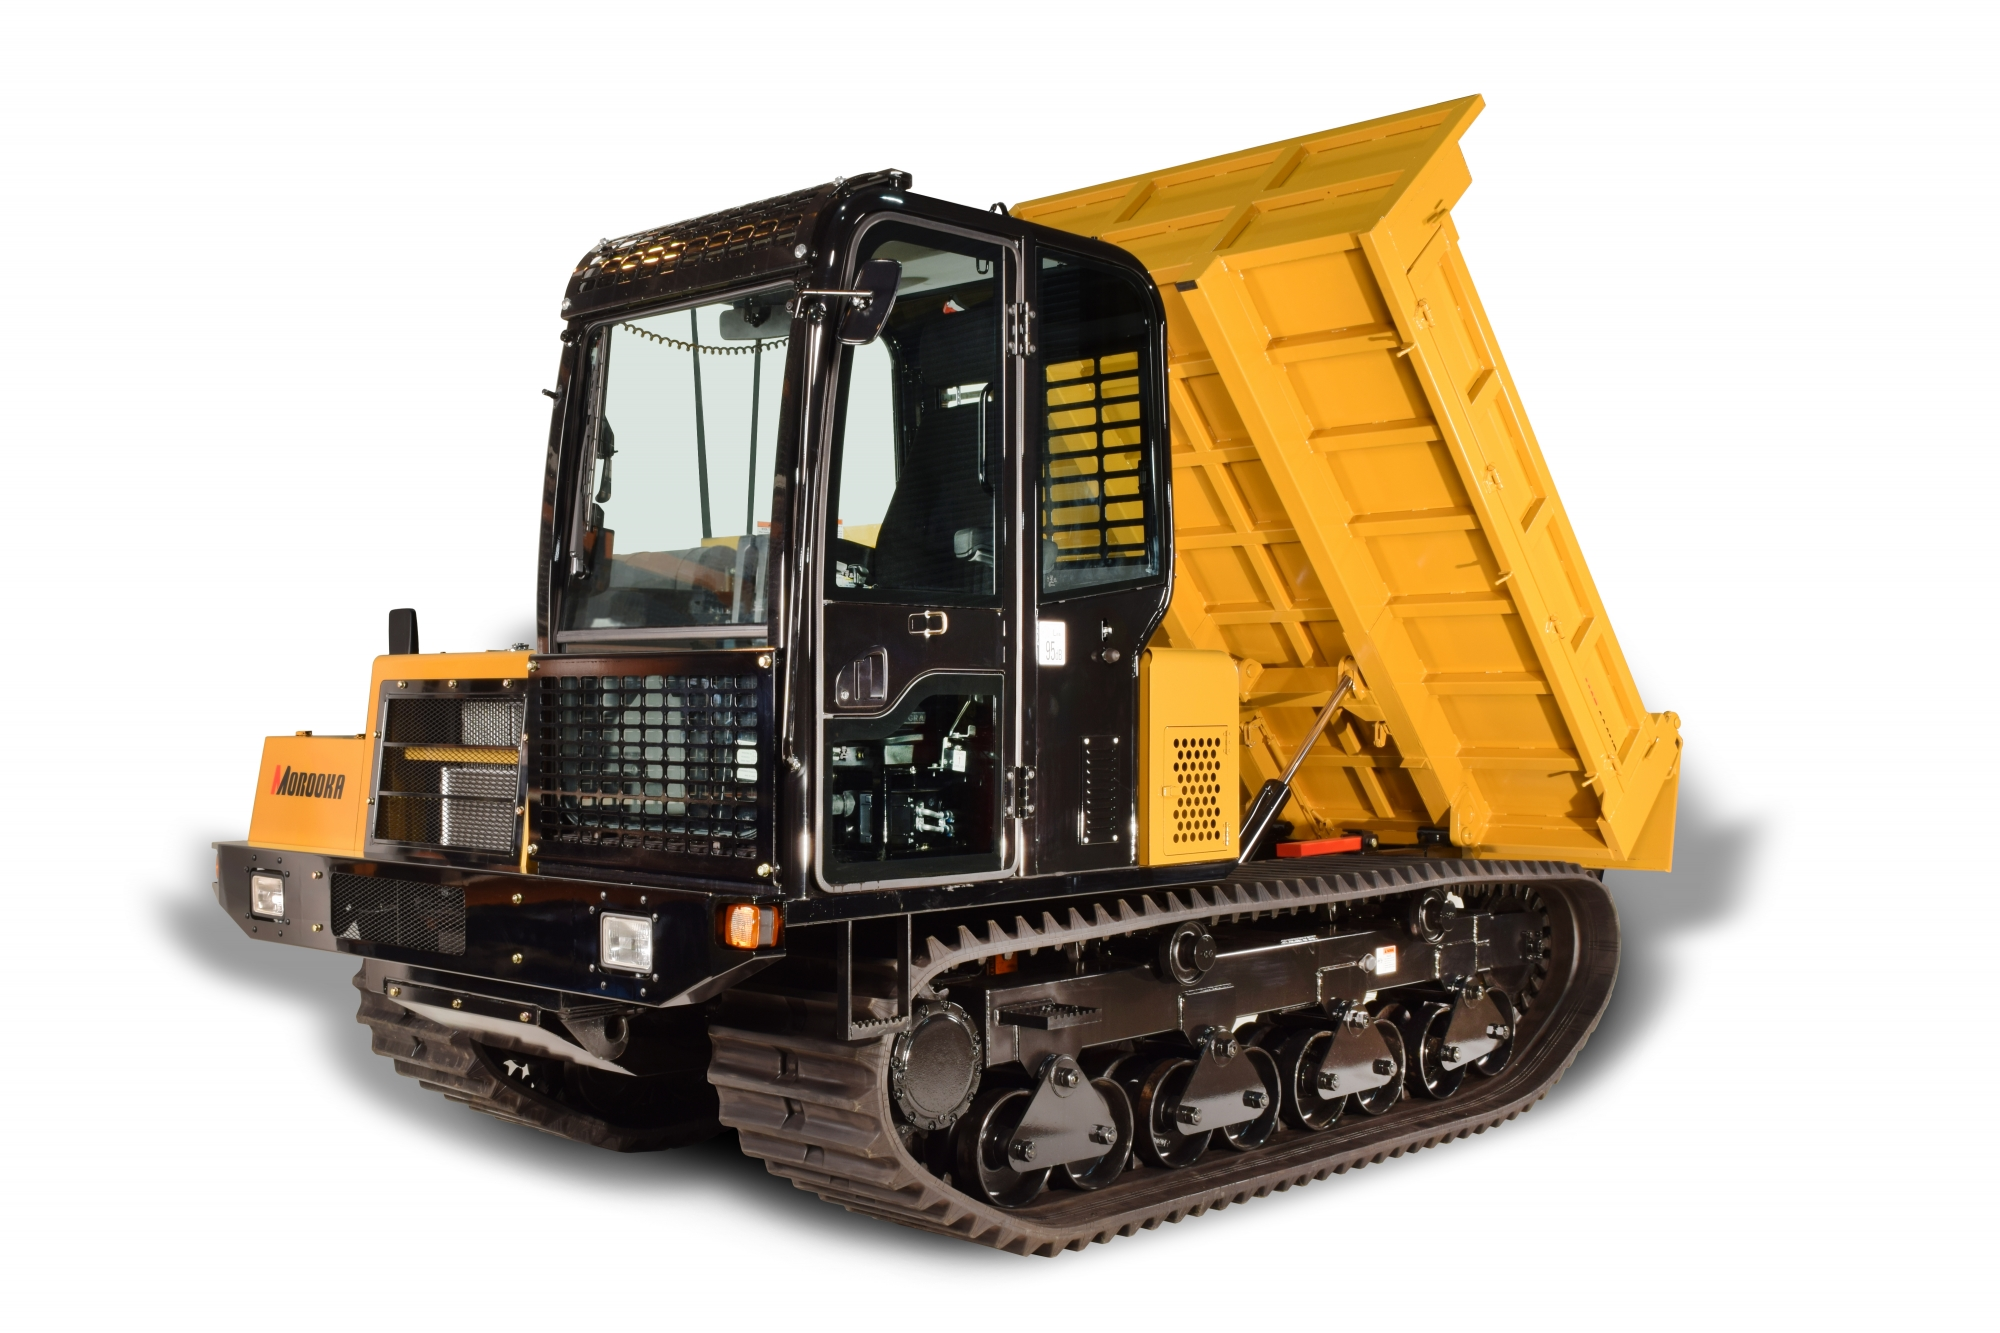 Tracked Dumper Hire Find Your Local Hire Specialists